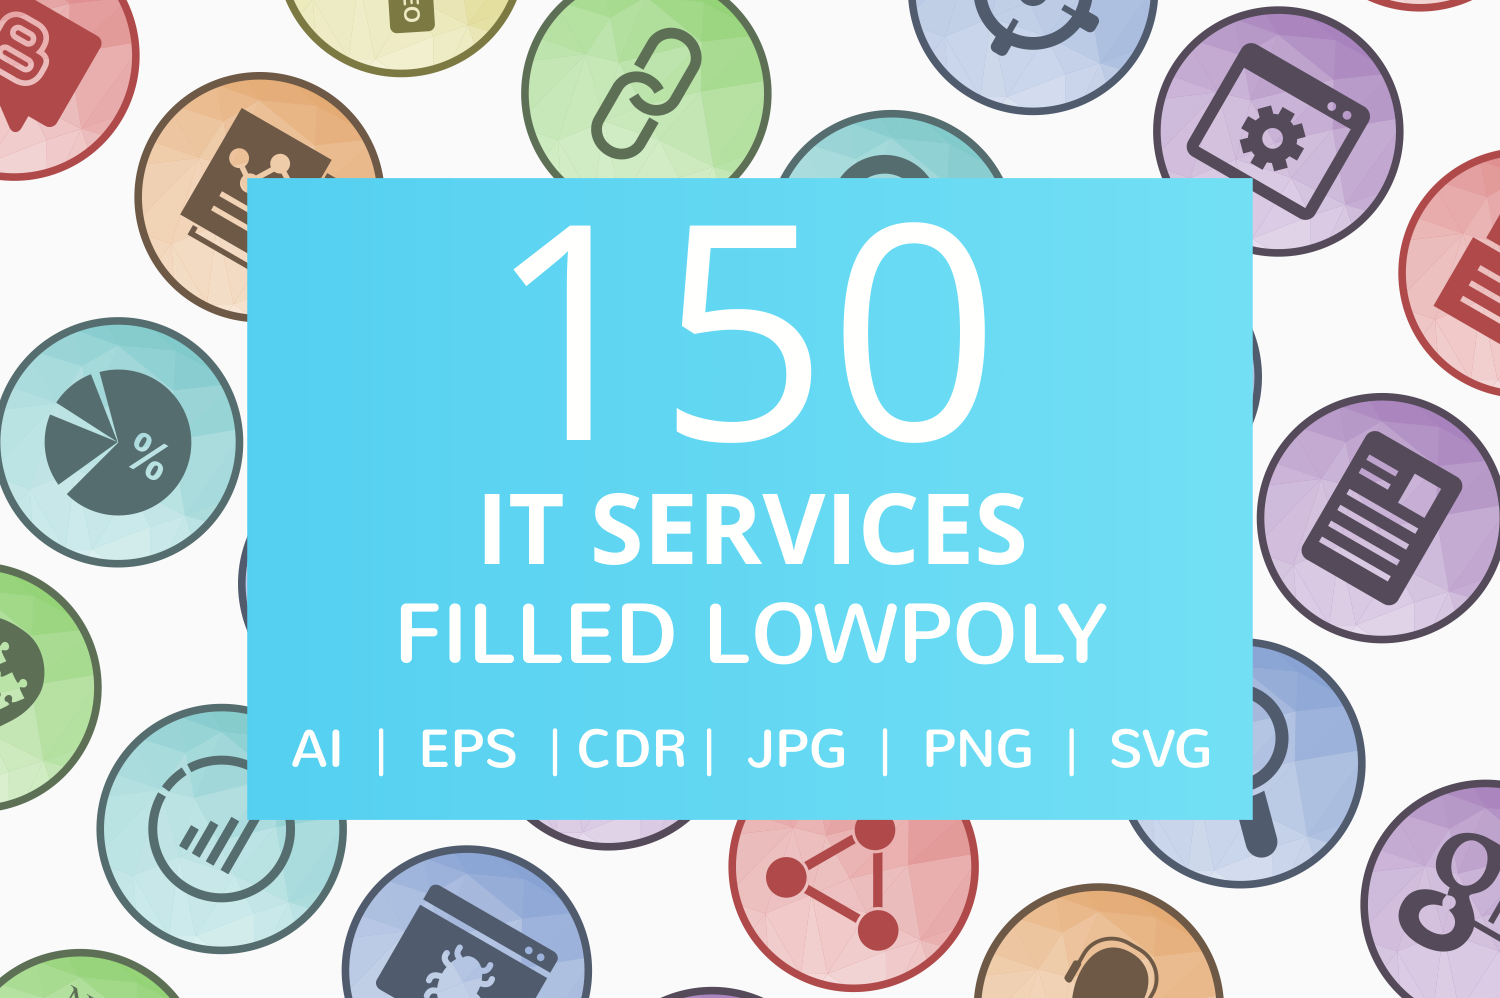 150 IT Services Filled Low Poly Icons example image 1